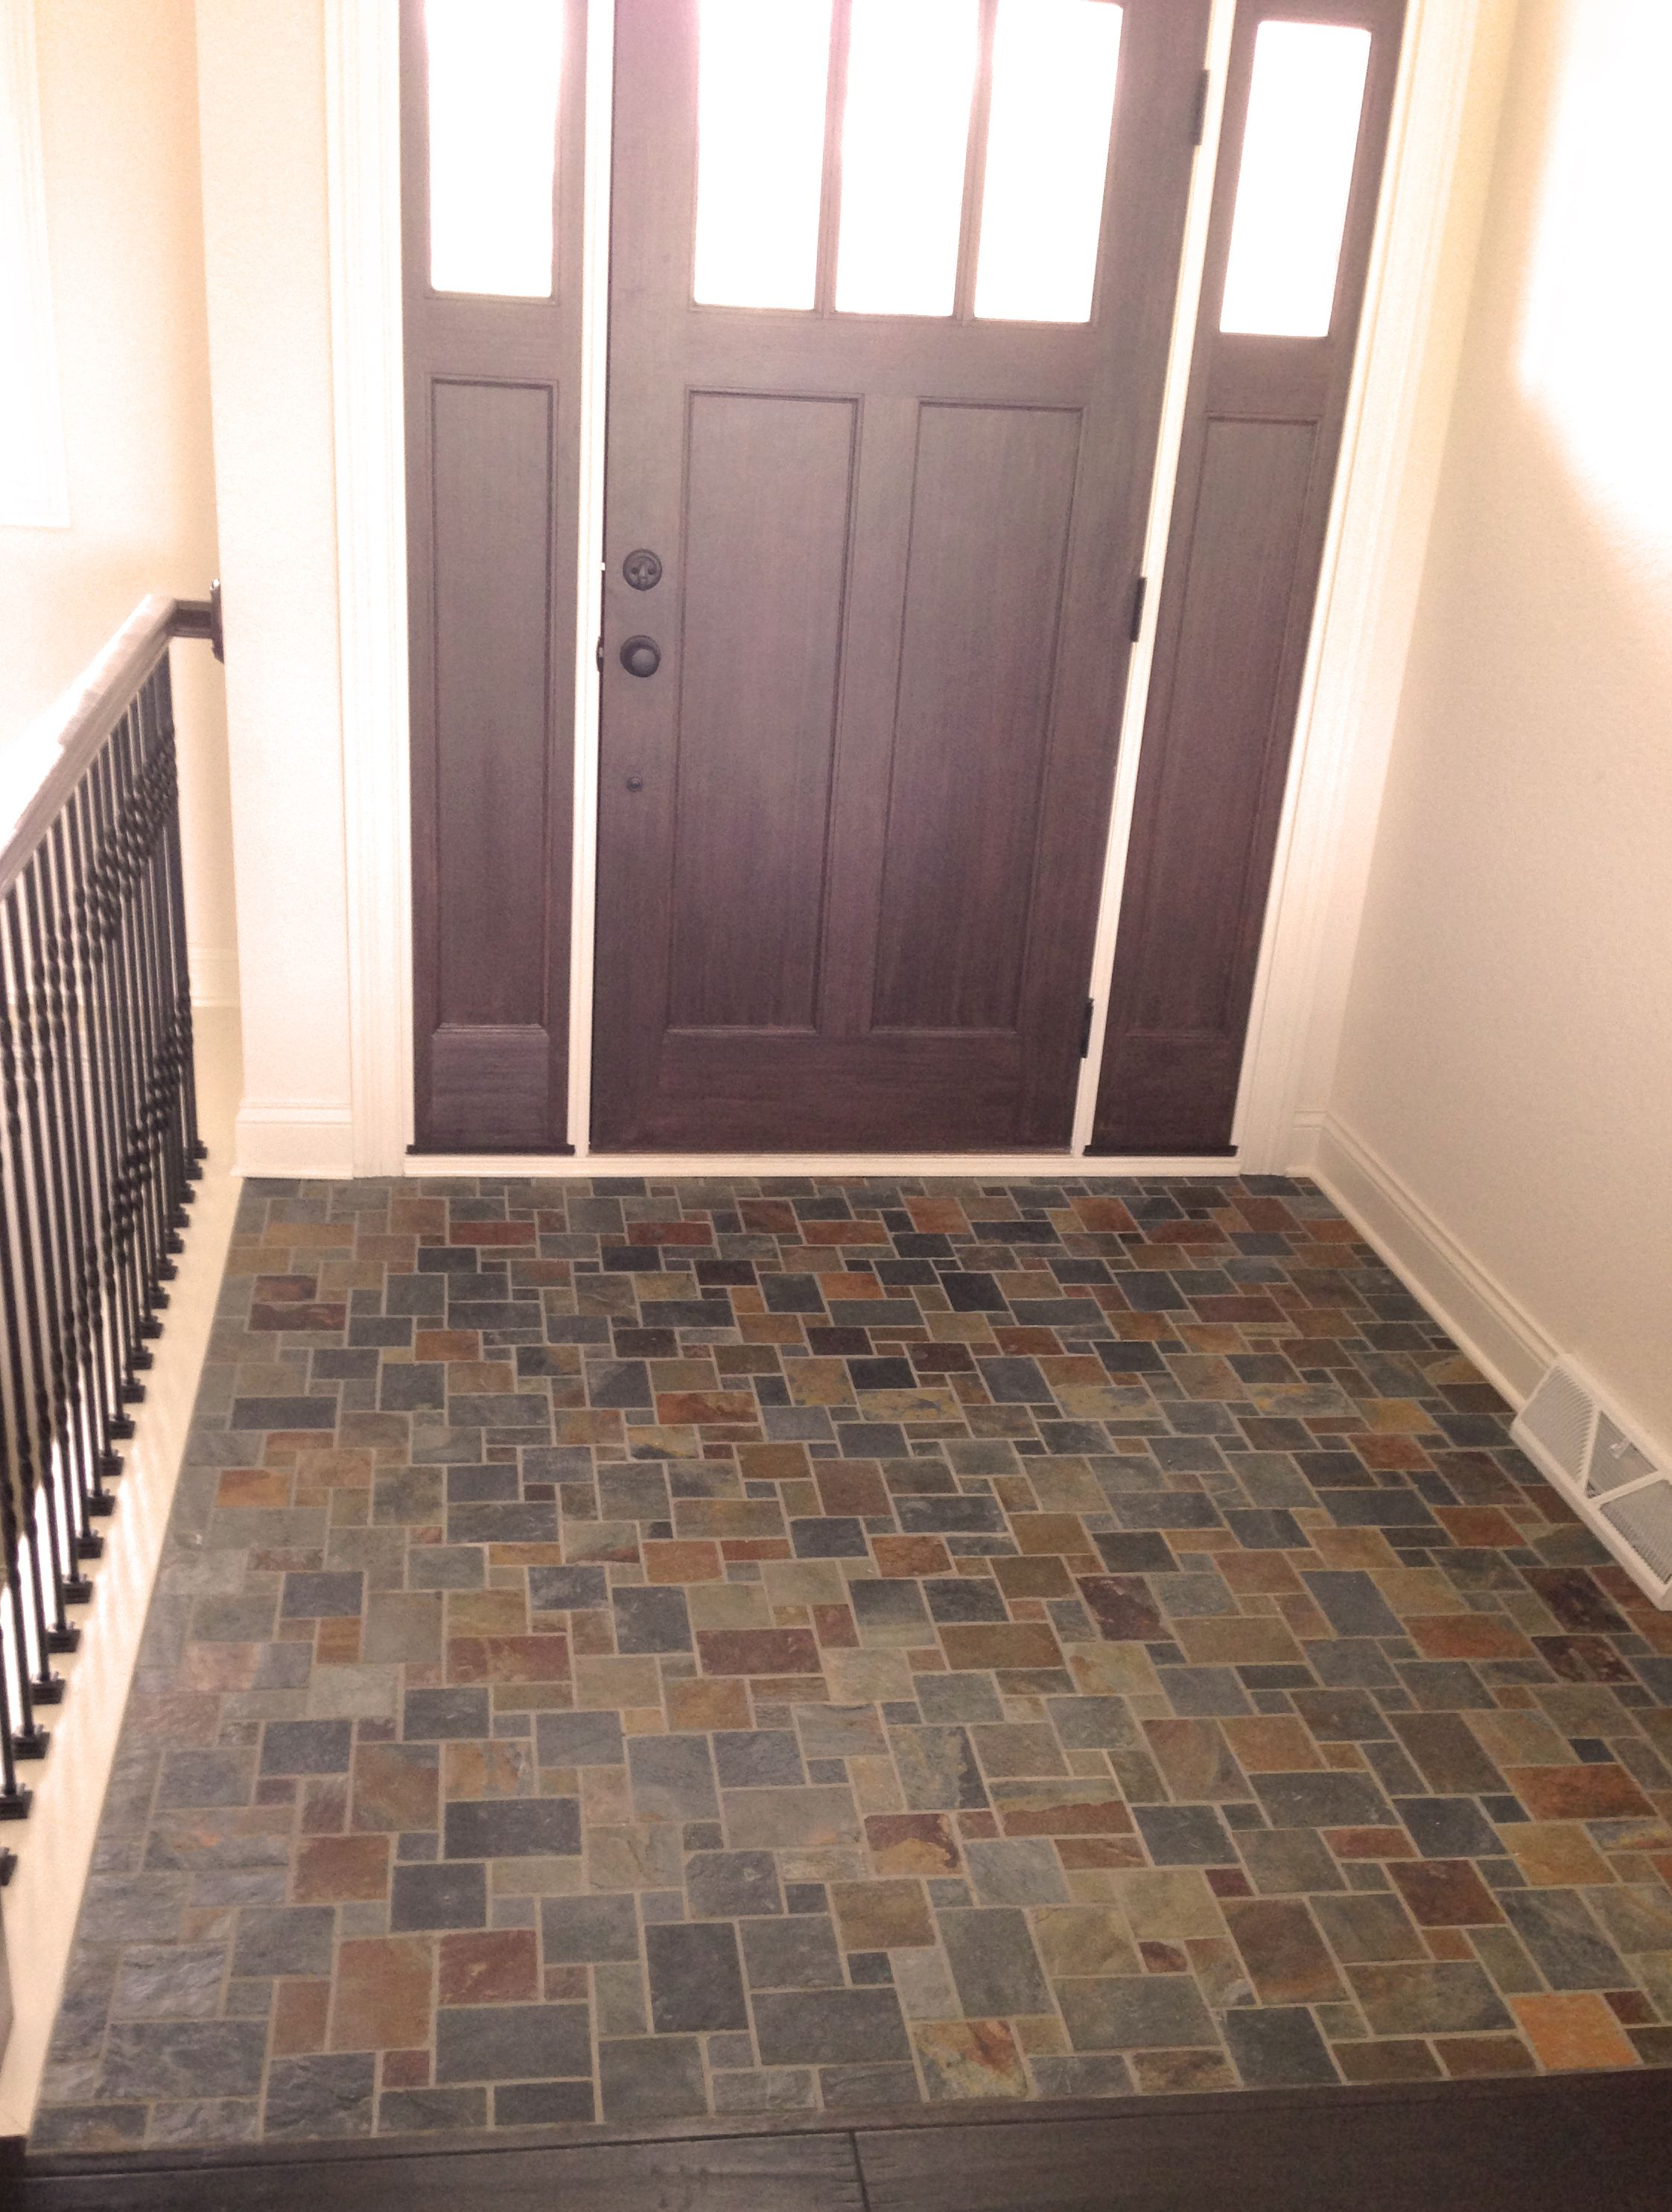 Using a versailles pattern for entry tile offers a nice using a versailles pattern for entry tile offers a nice distraction to the small area that dailygadgetfo Images